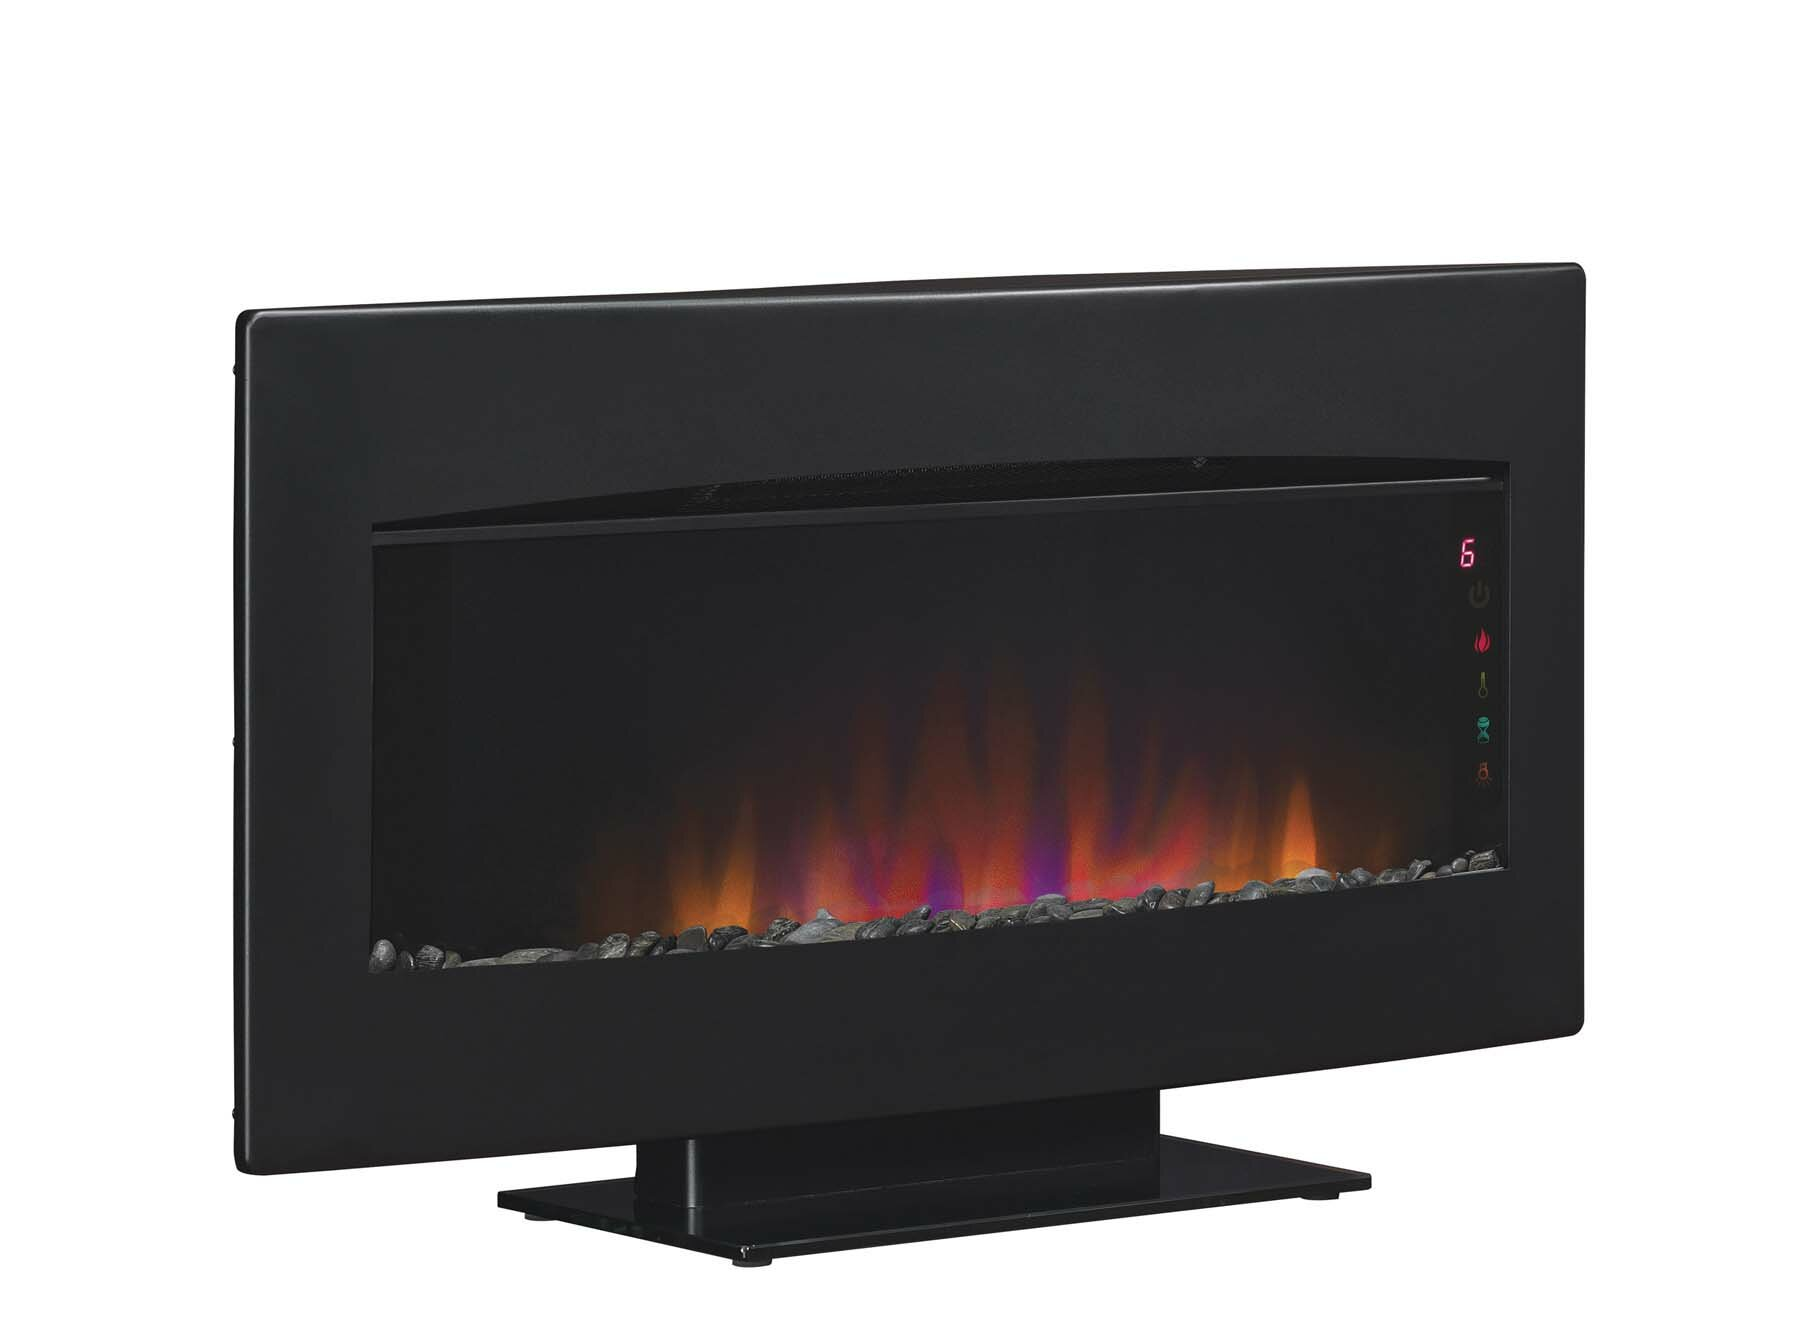 Classic Flame Wall Hanging Serendipity Fire Display With Heater